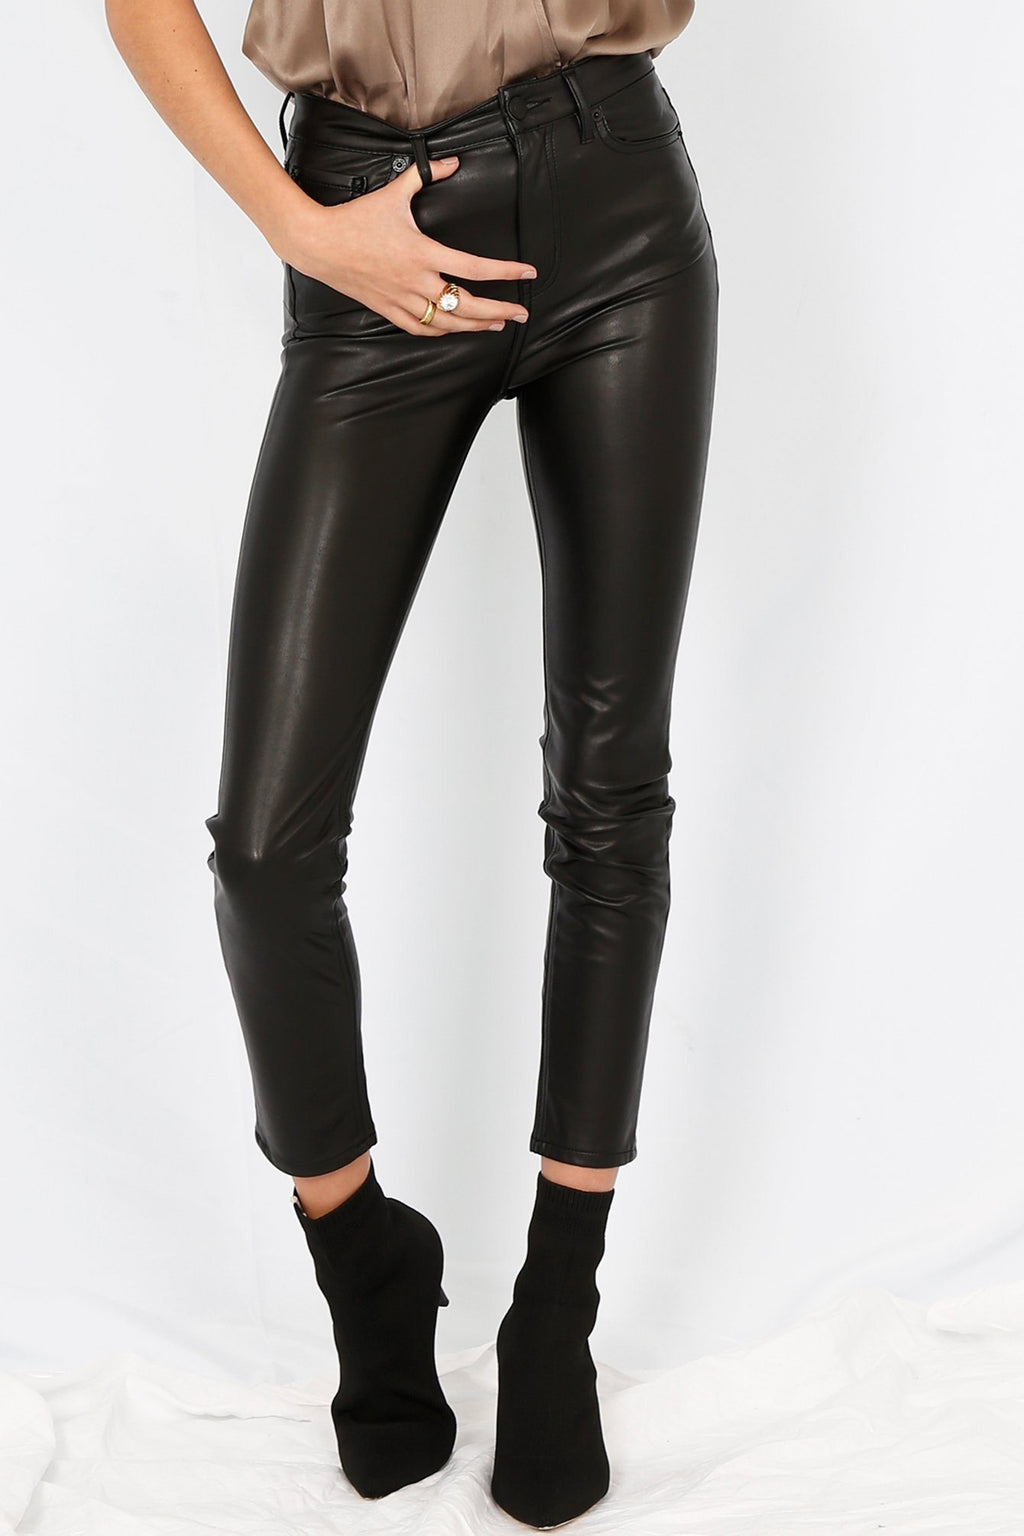 THE KOOPLES | Franky Fancy Leather Trousers - Black